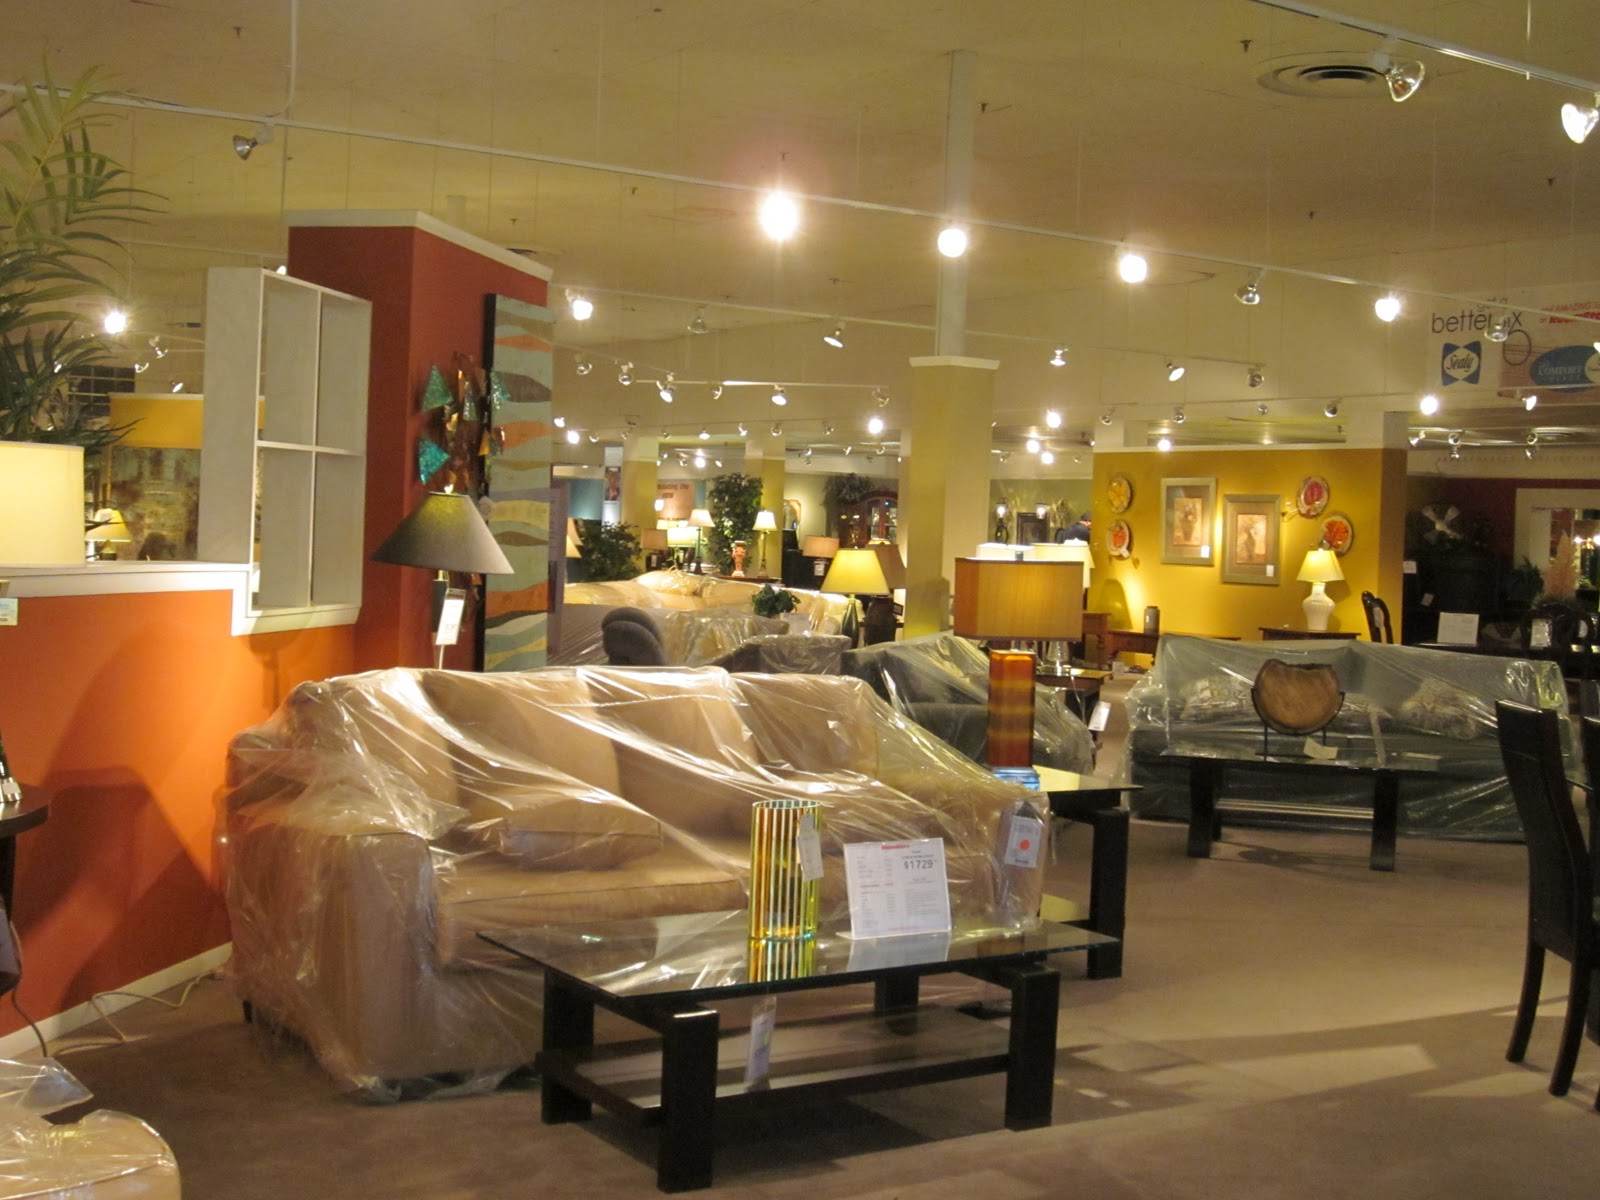 Before the RoomStore opened in Annandale about 15 years ago  there was a  Hub furniture store in that location. the Annandale Blog  Annandale RoomStore will close